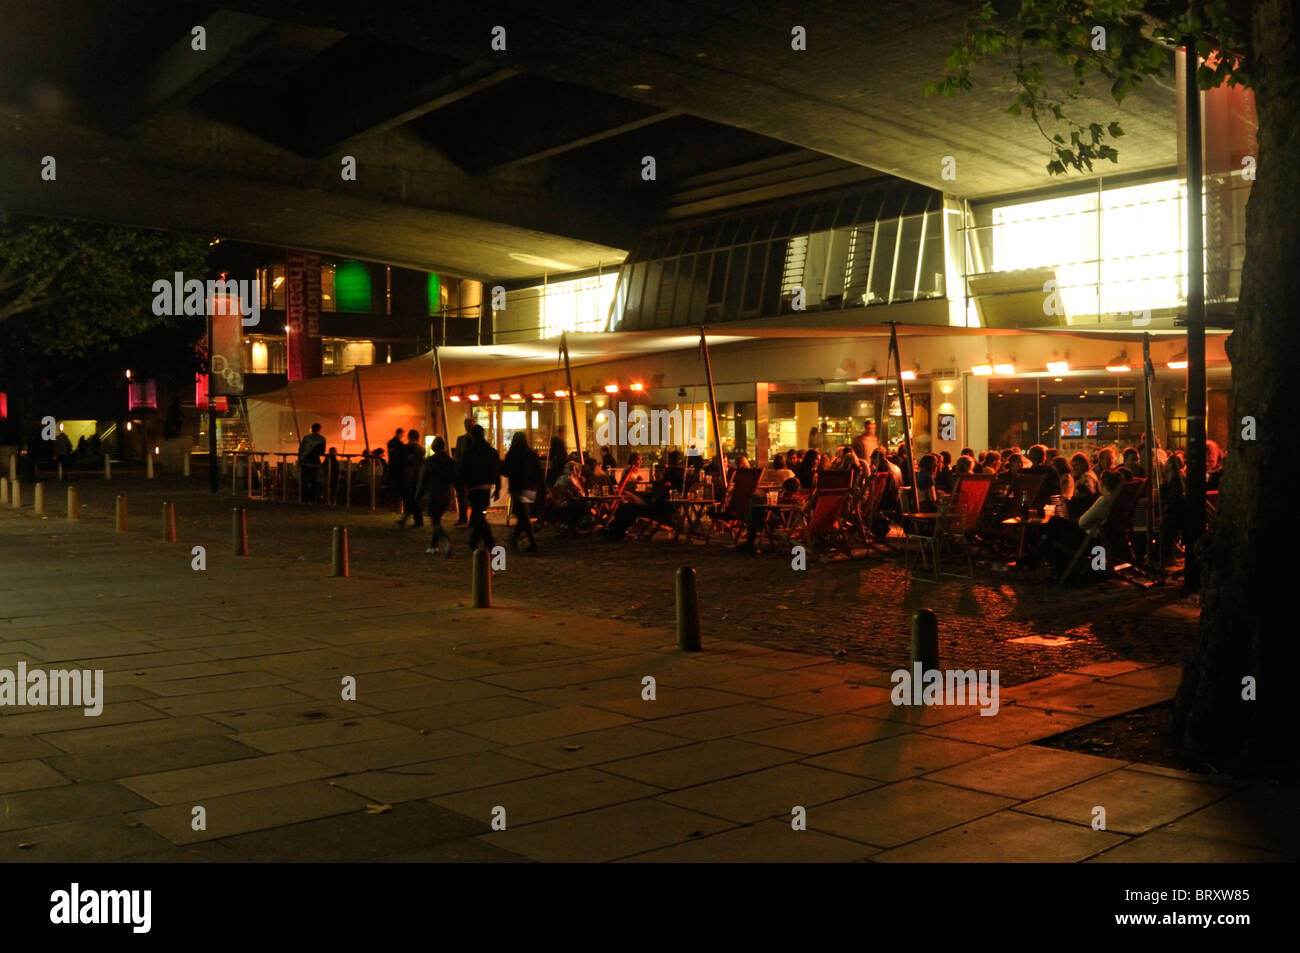 Outdoor seating at BFI Southbank, London, UK. - Stock Image